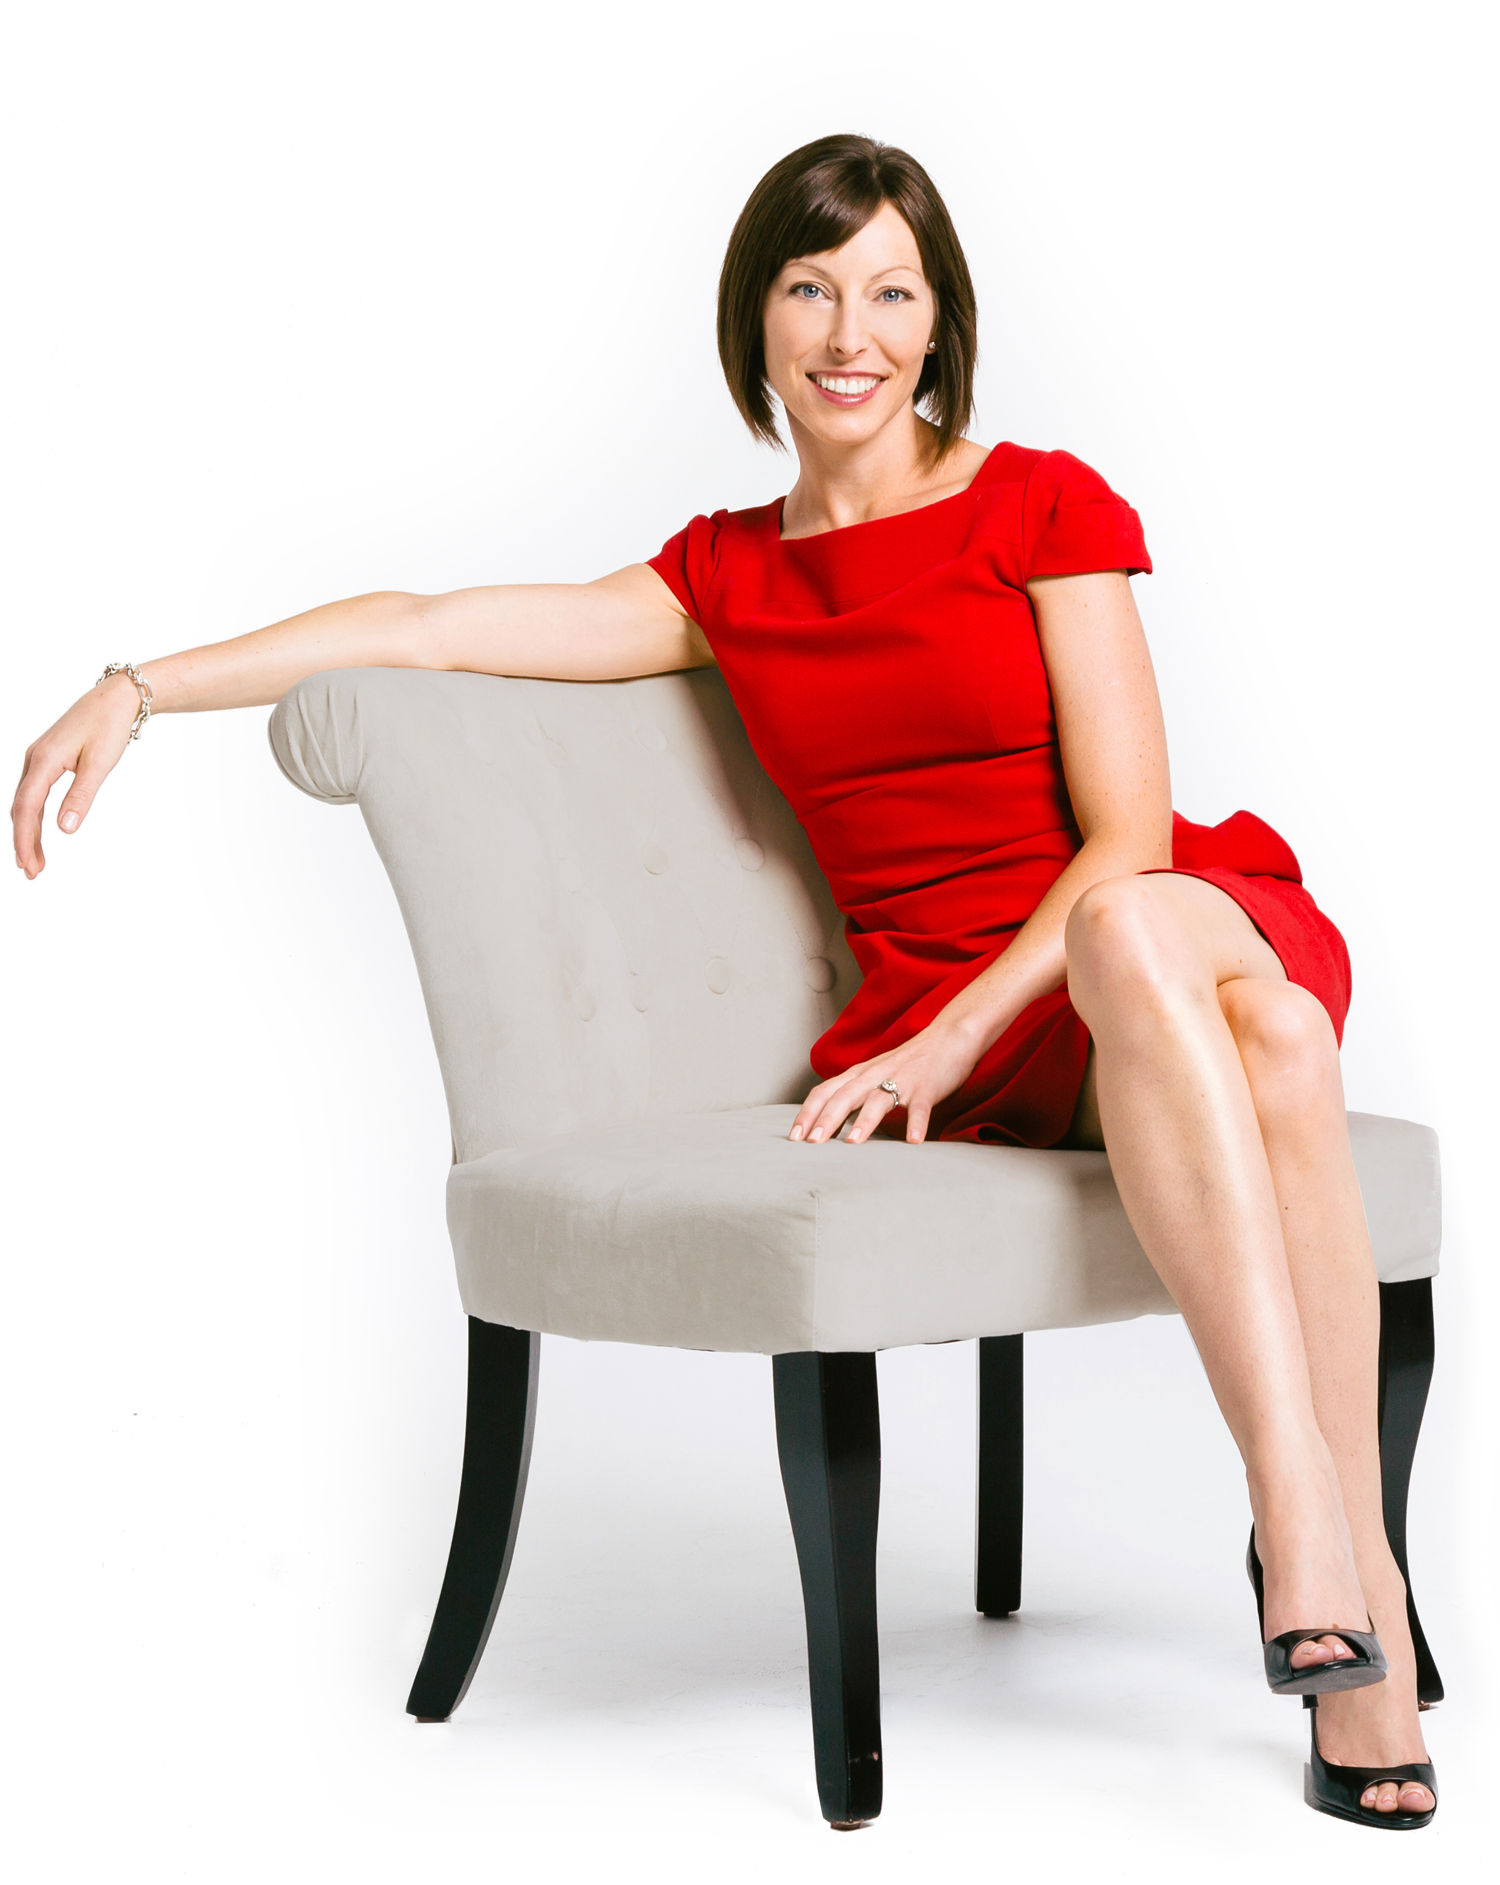 Katie Wagner Sitting on a Chair in a red dress